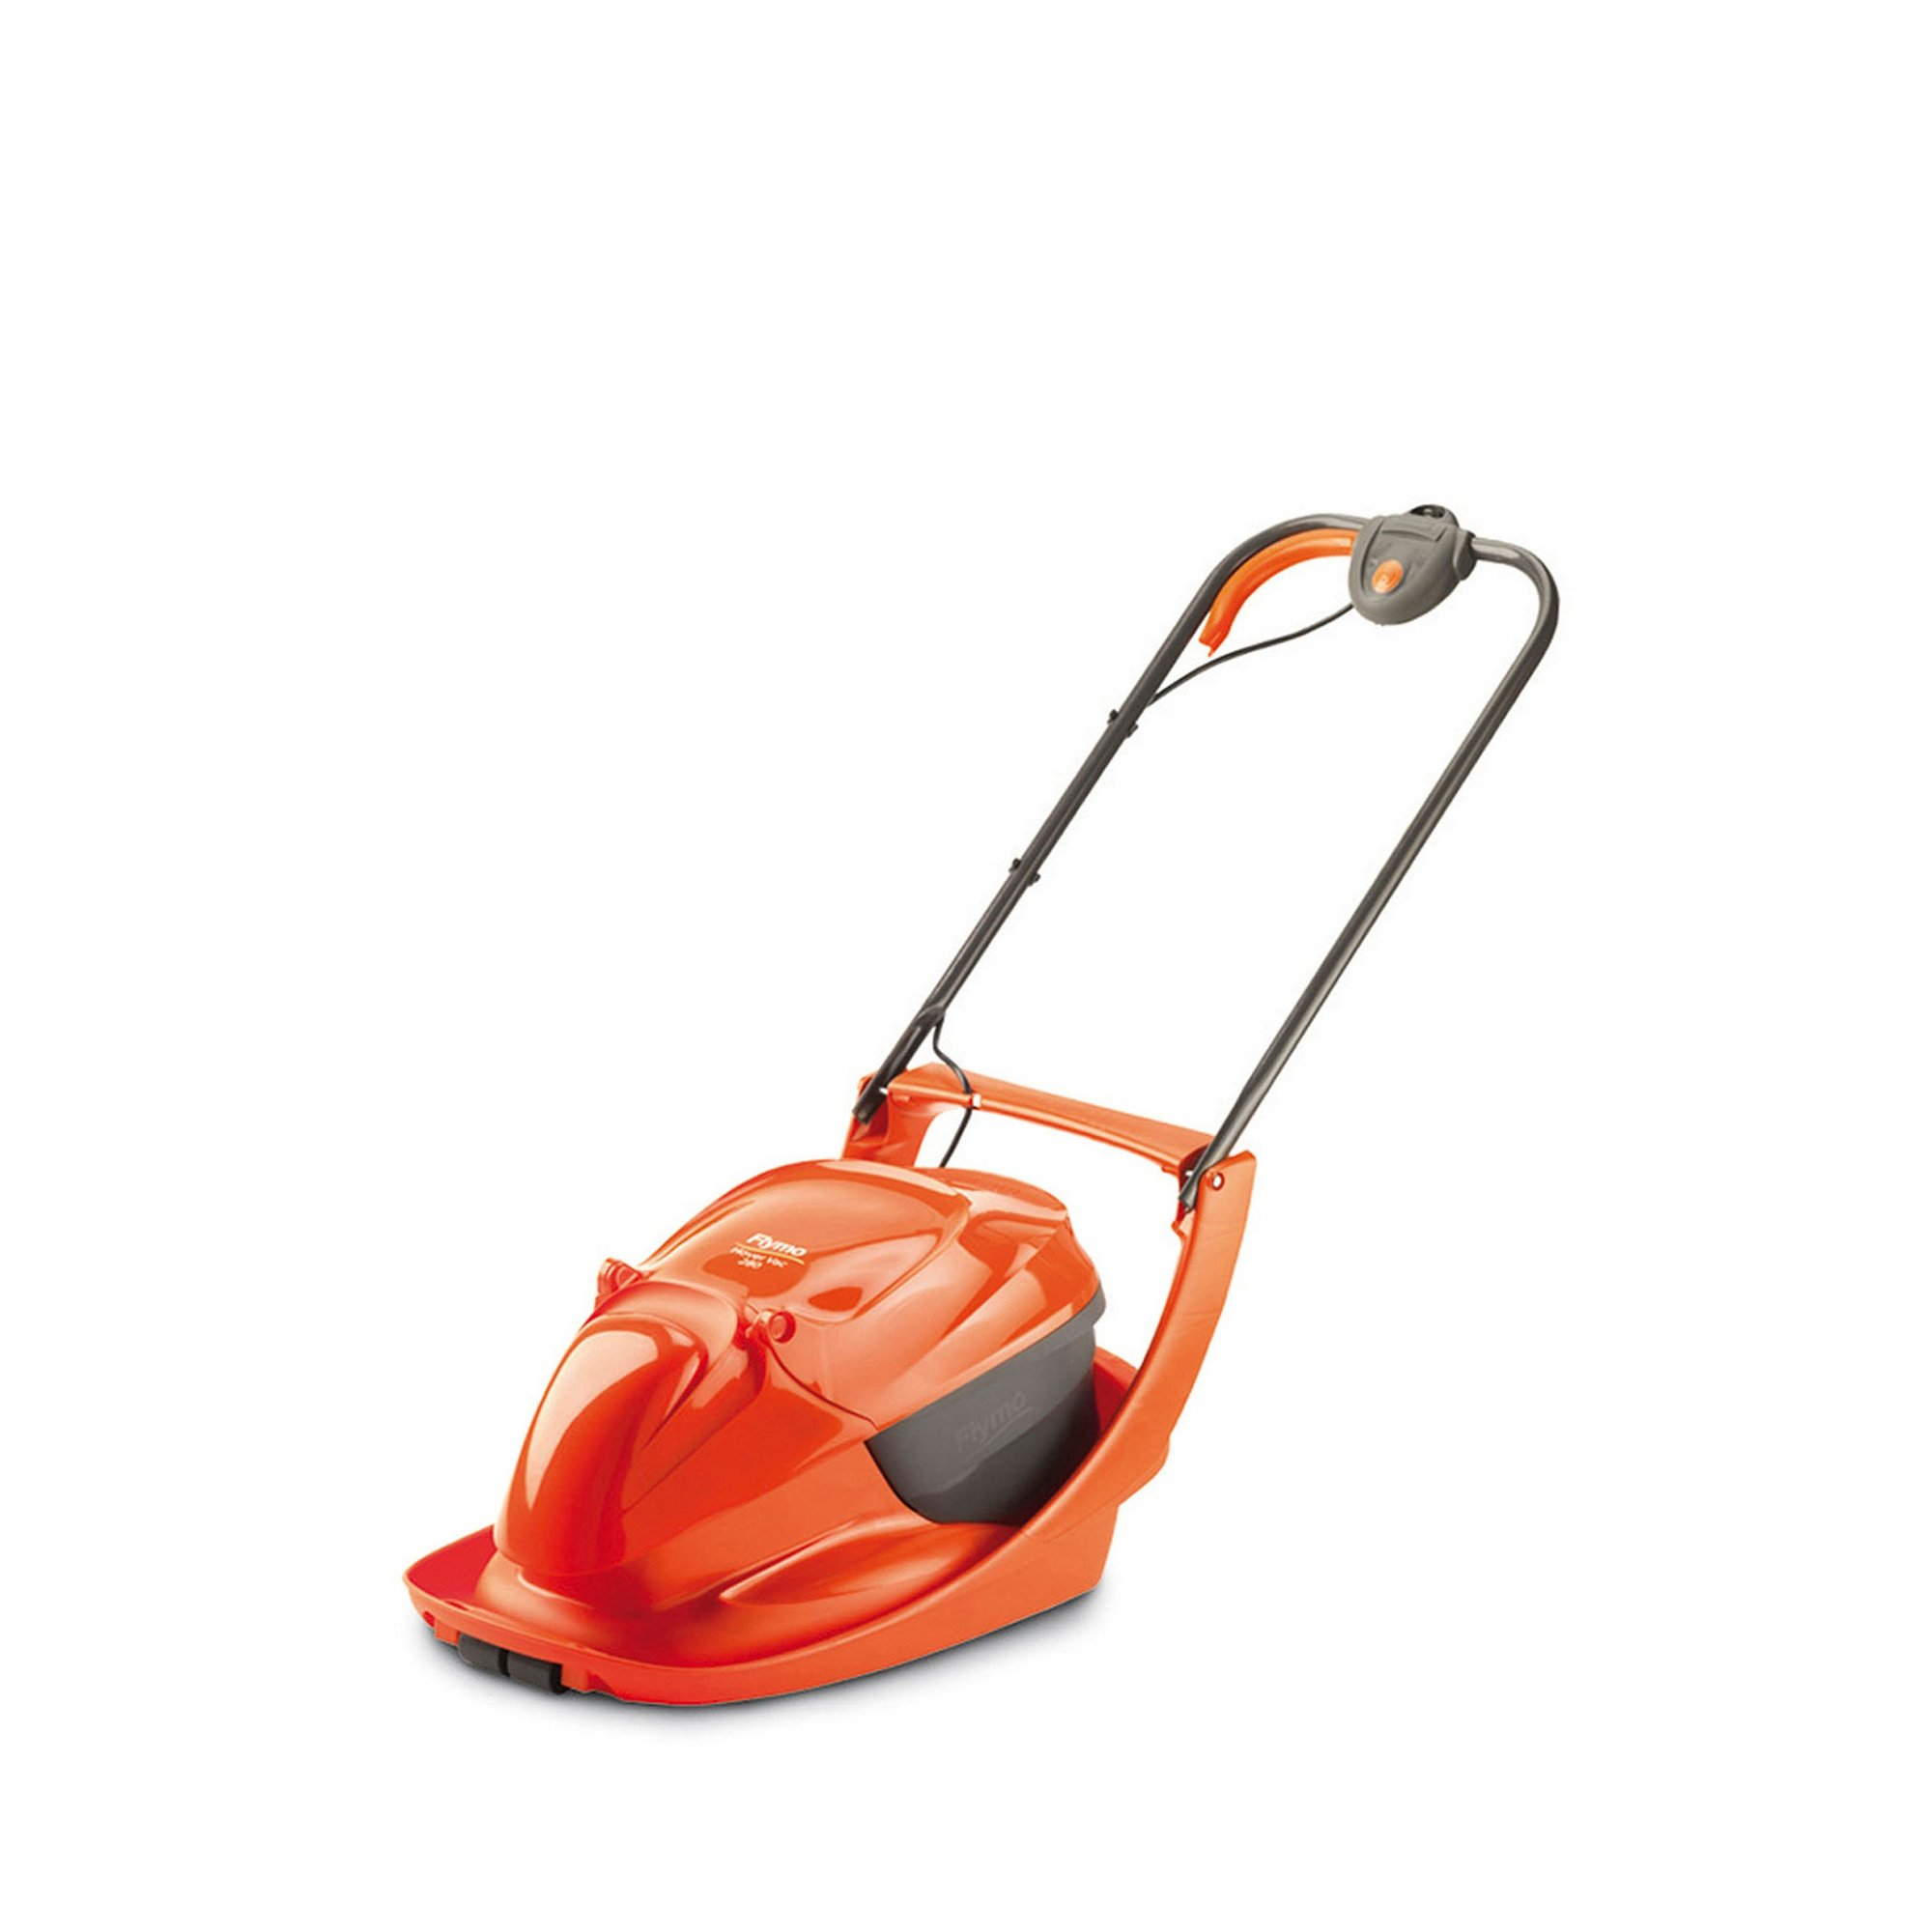 Image of Flymo Hover Vac 280 Lawnmower